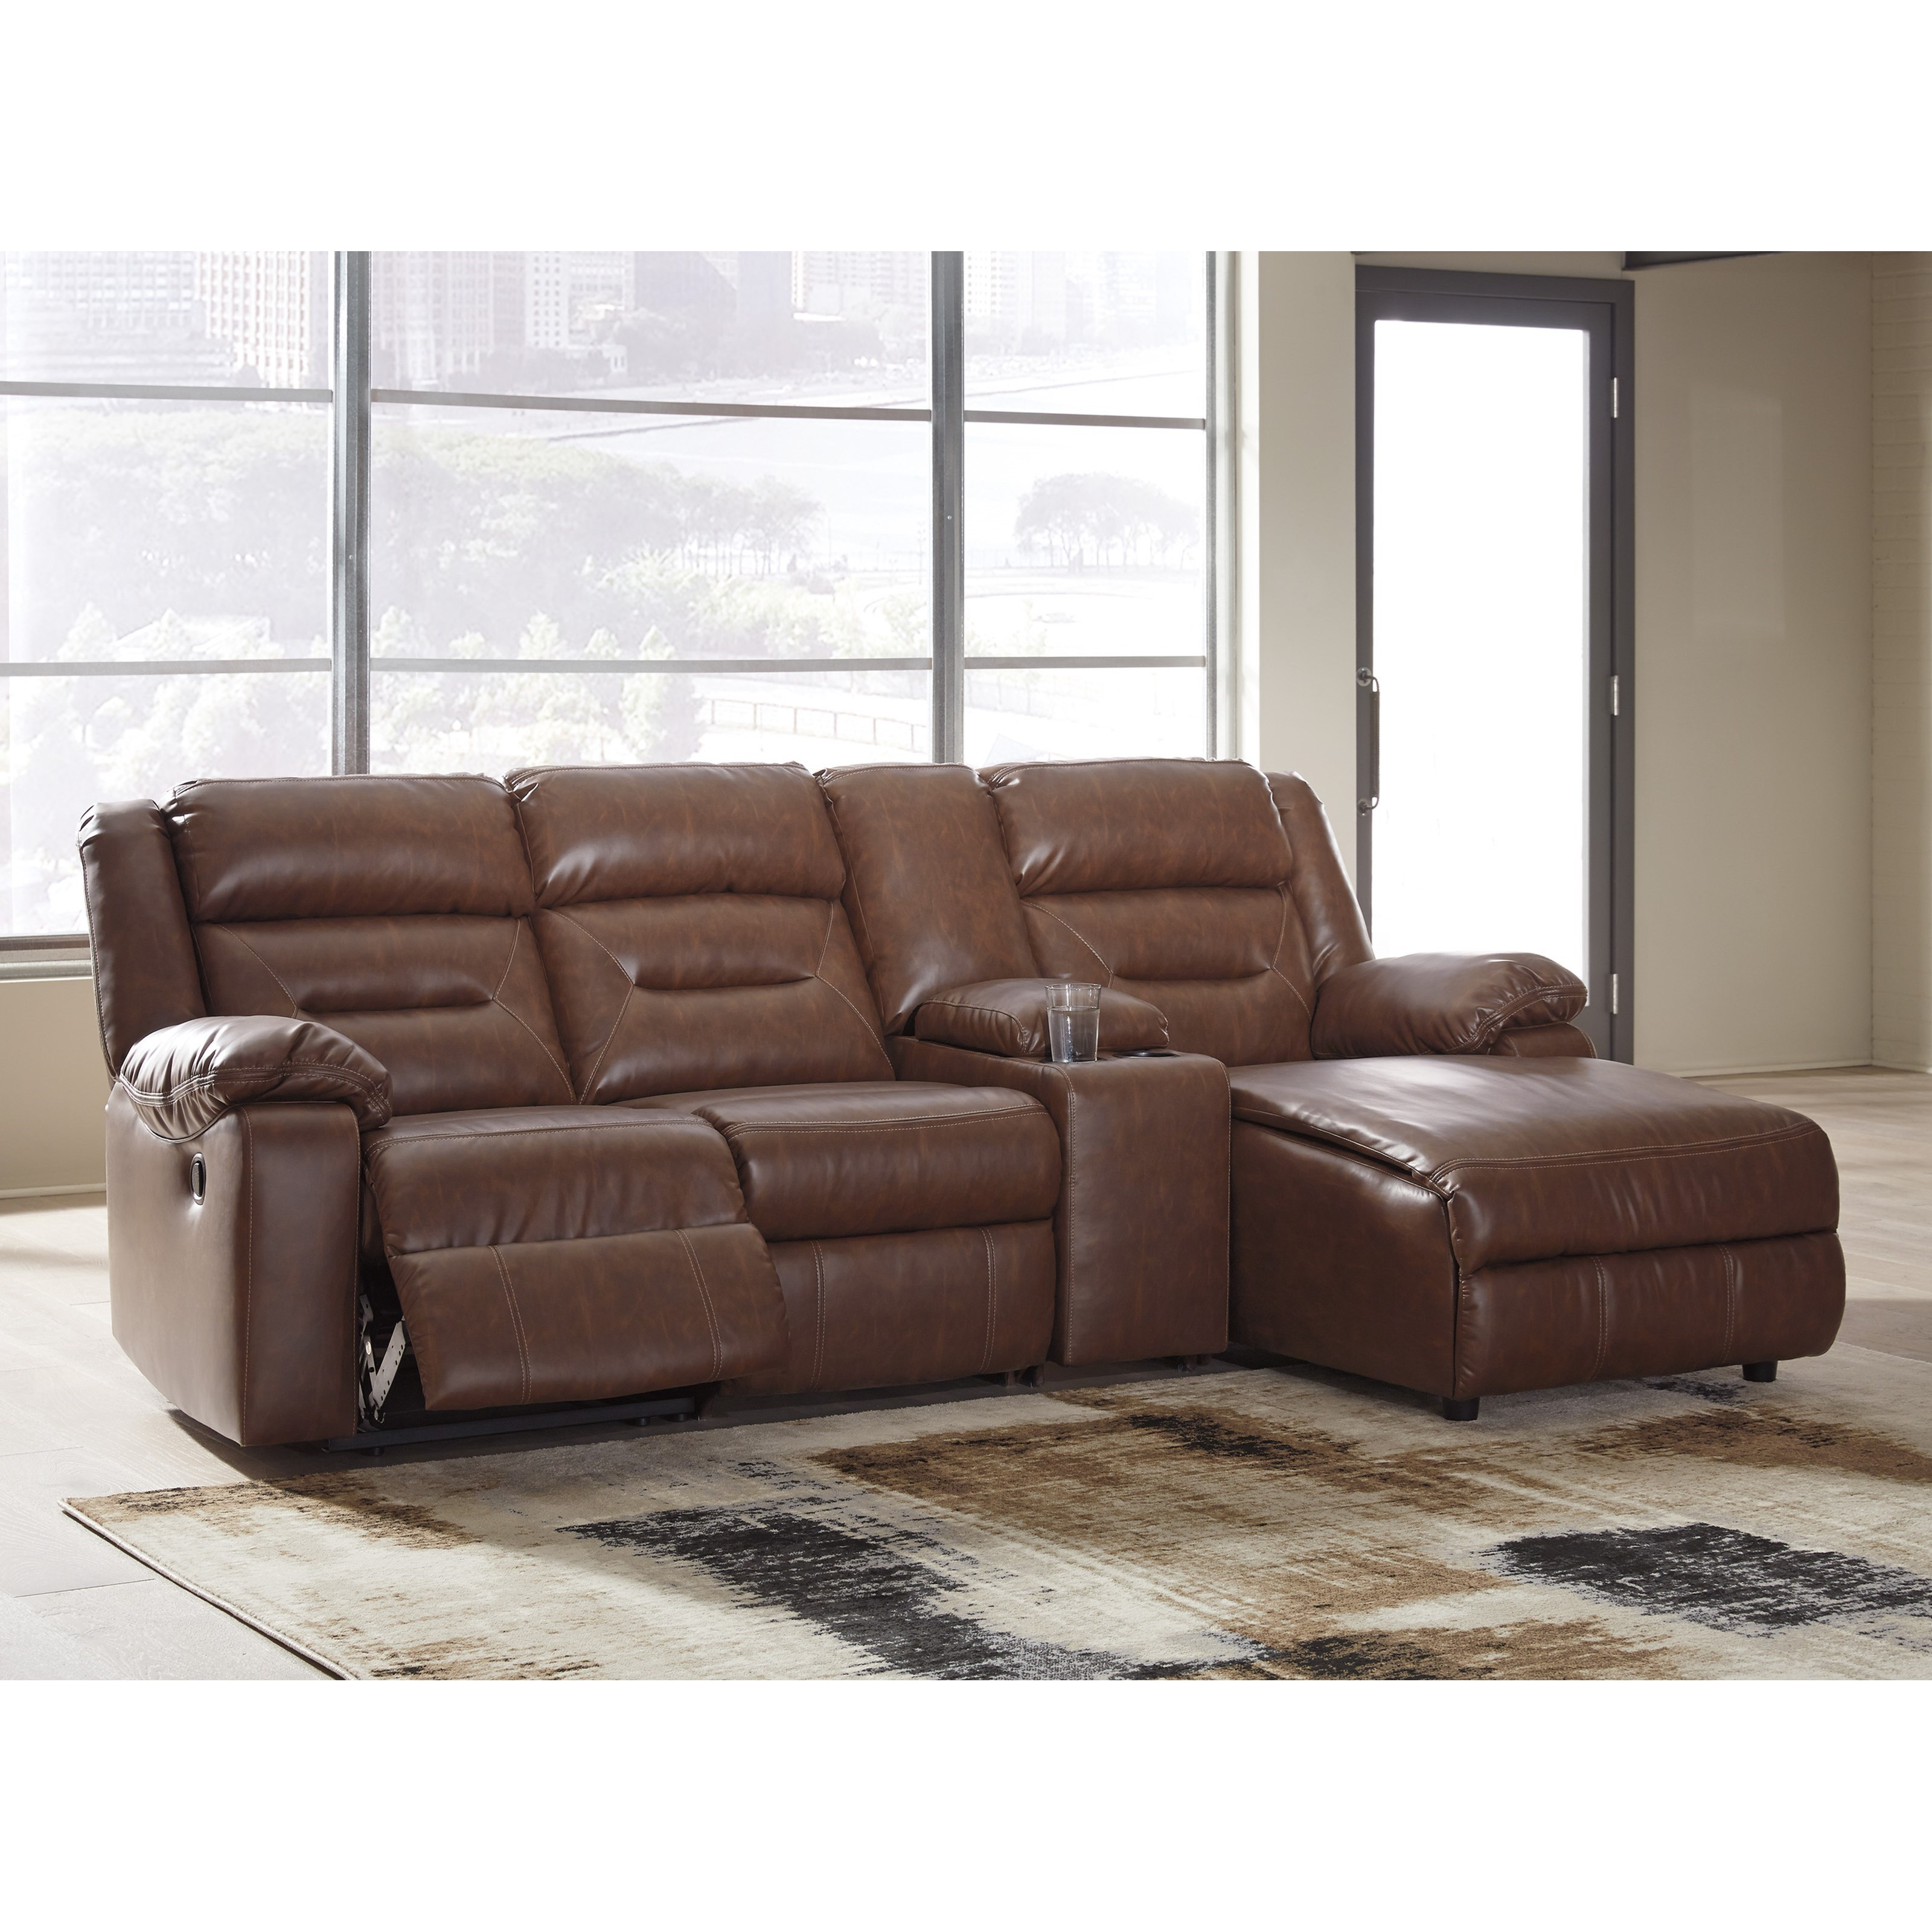 Sectional Sofas By Ashley Furniture: Signature Design By Ashley Coahoma Four Piece Sectional